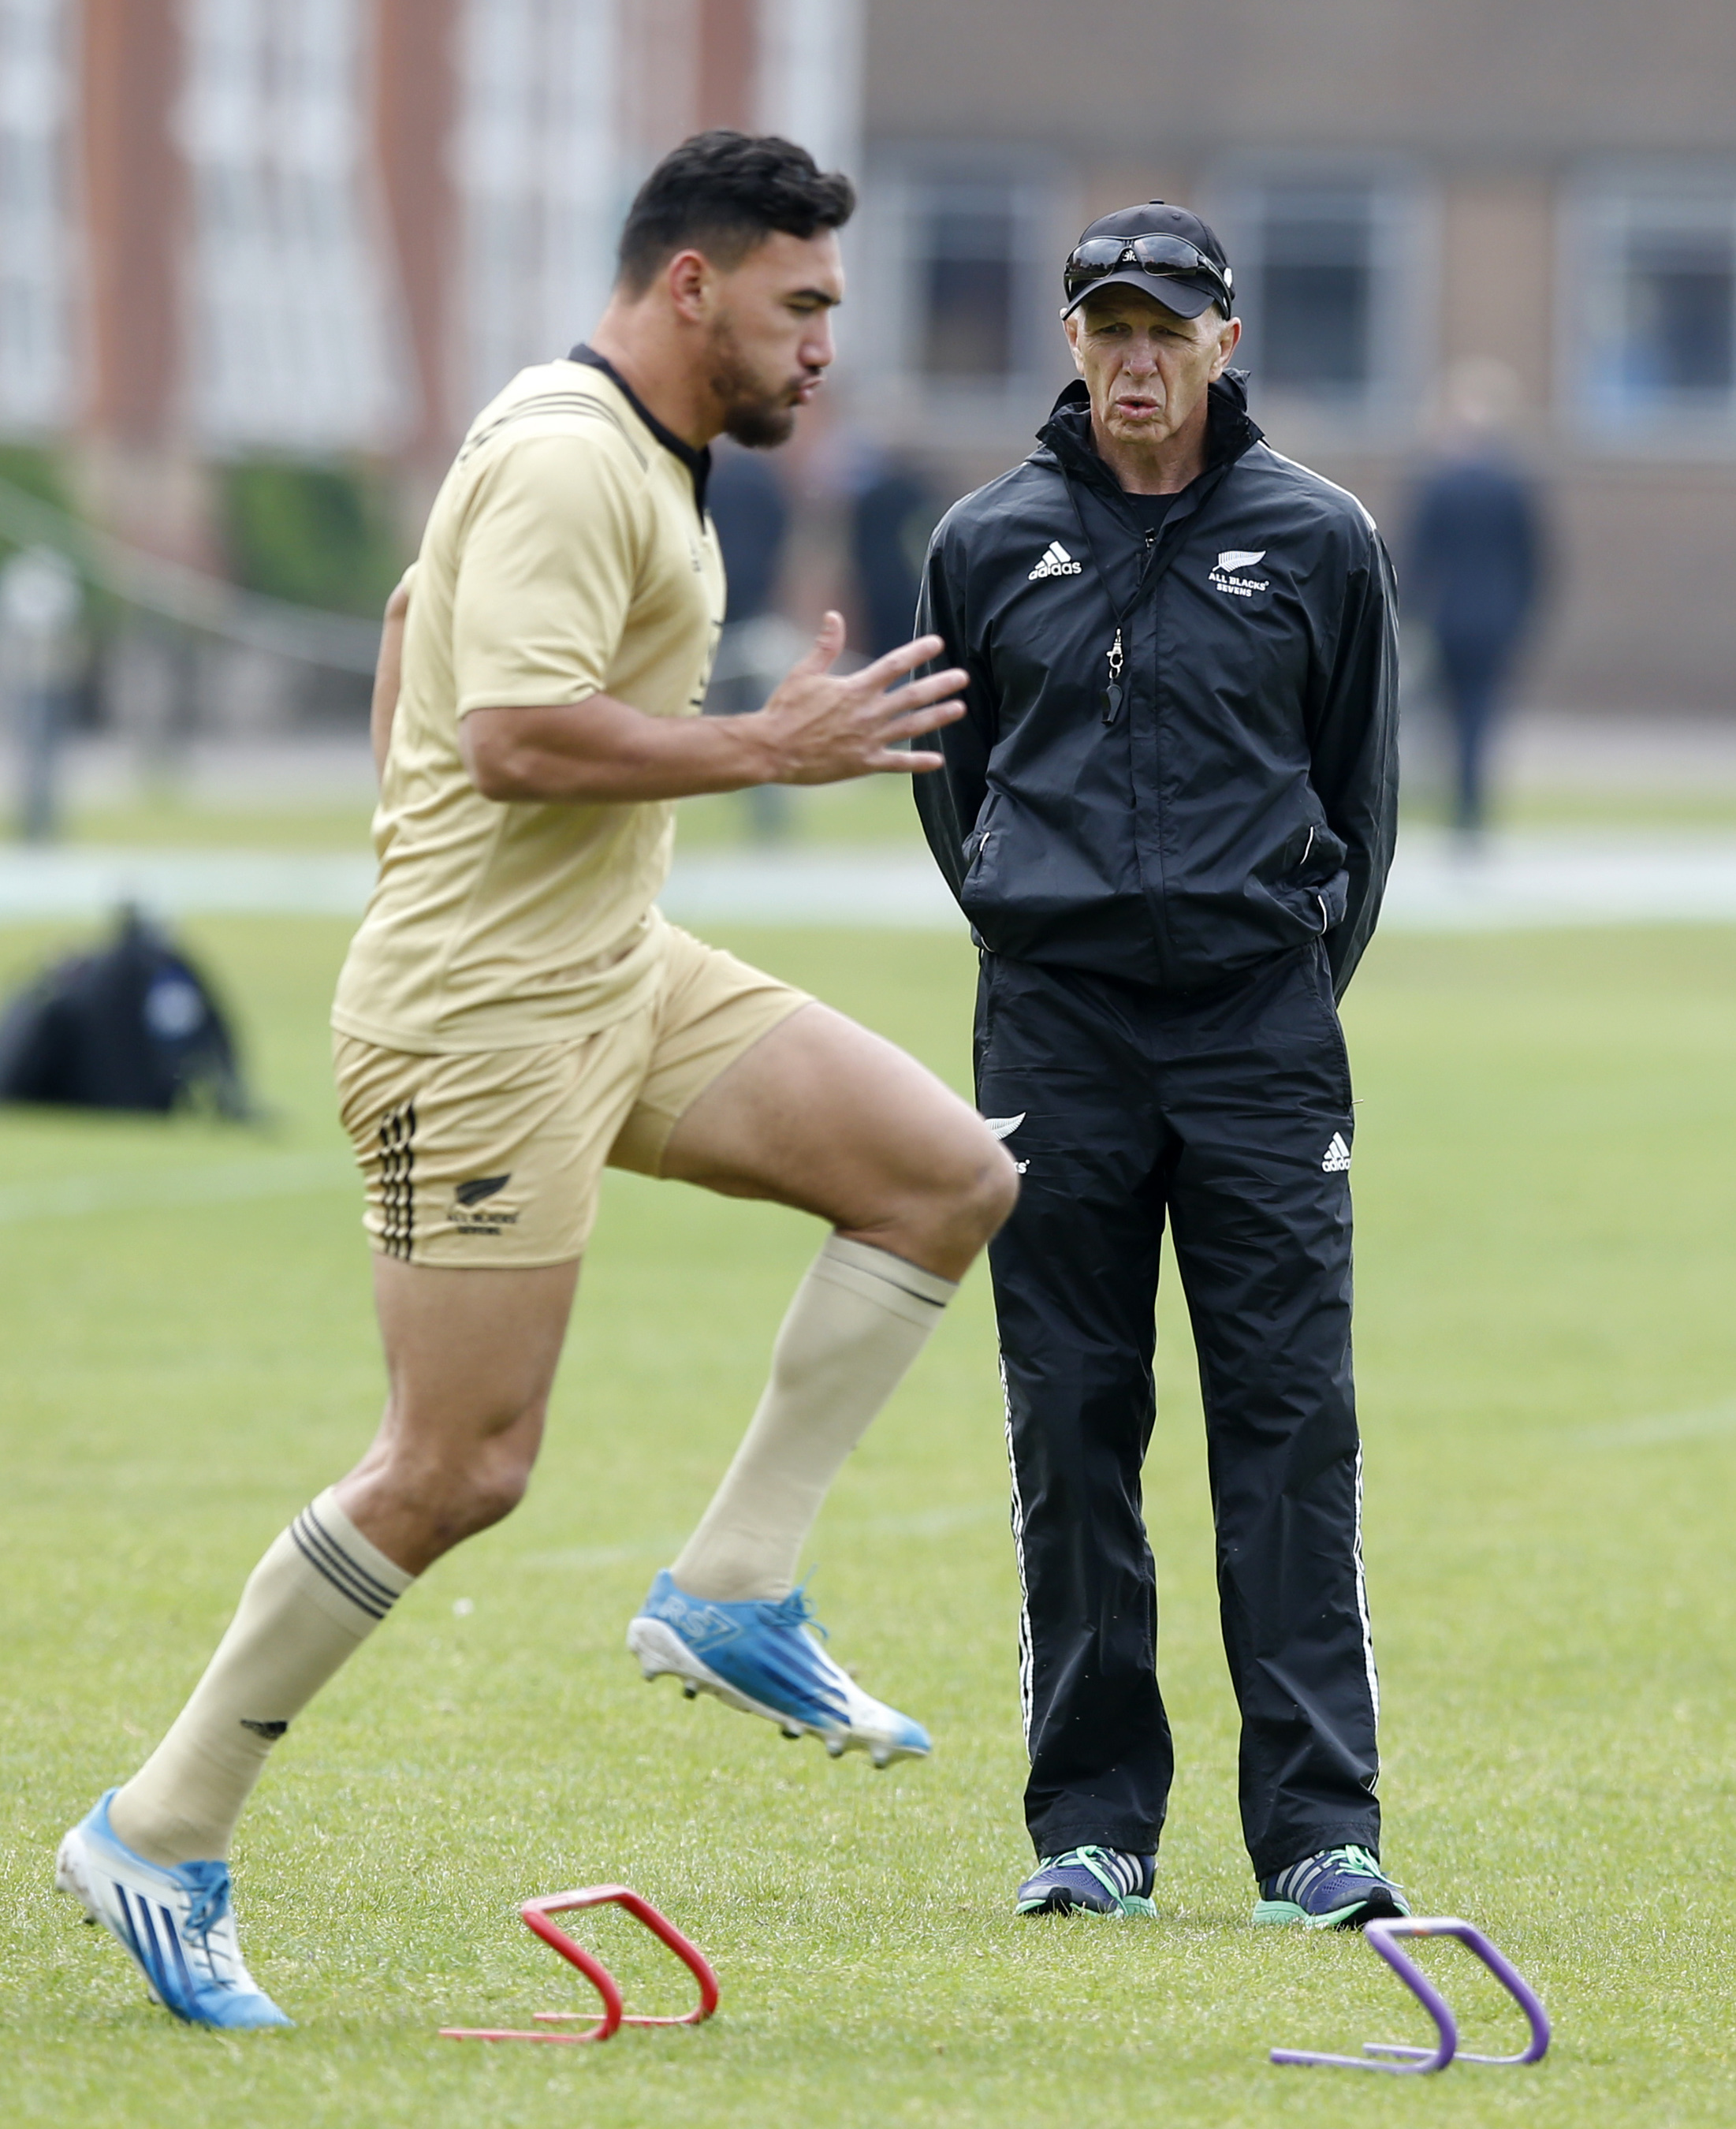 In this photo taken Thursday May 19, 2016, Gordon Tietjens, left, the New Zealand rugby 7's coach, watches his players train at Dulwich College in London. The mere length of Tietjens' tenure as New Zealand's rugby sevens coach, 22 years and counting, is e